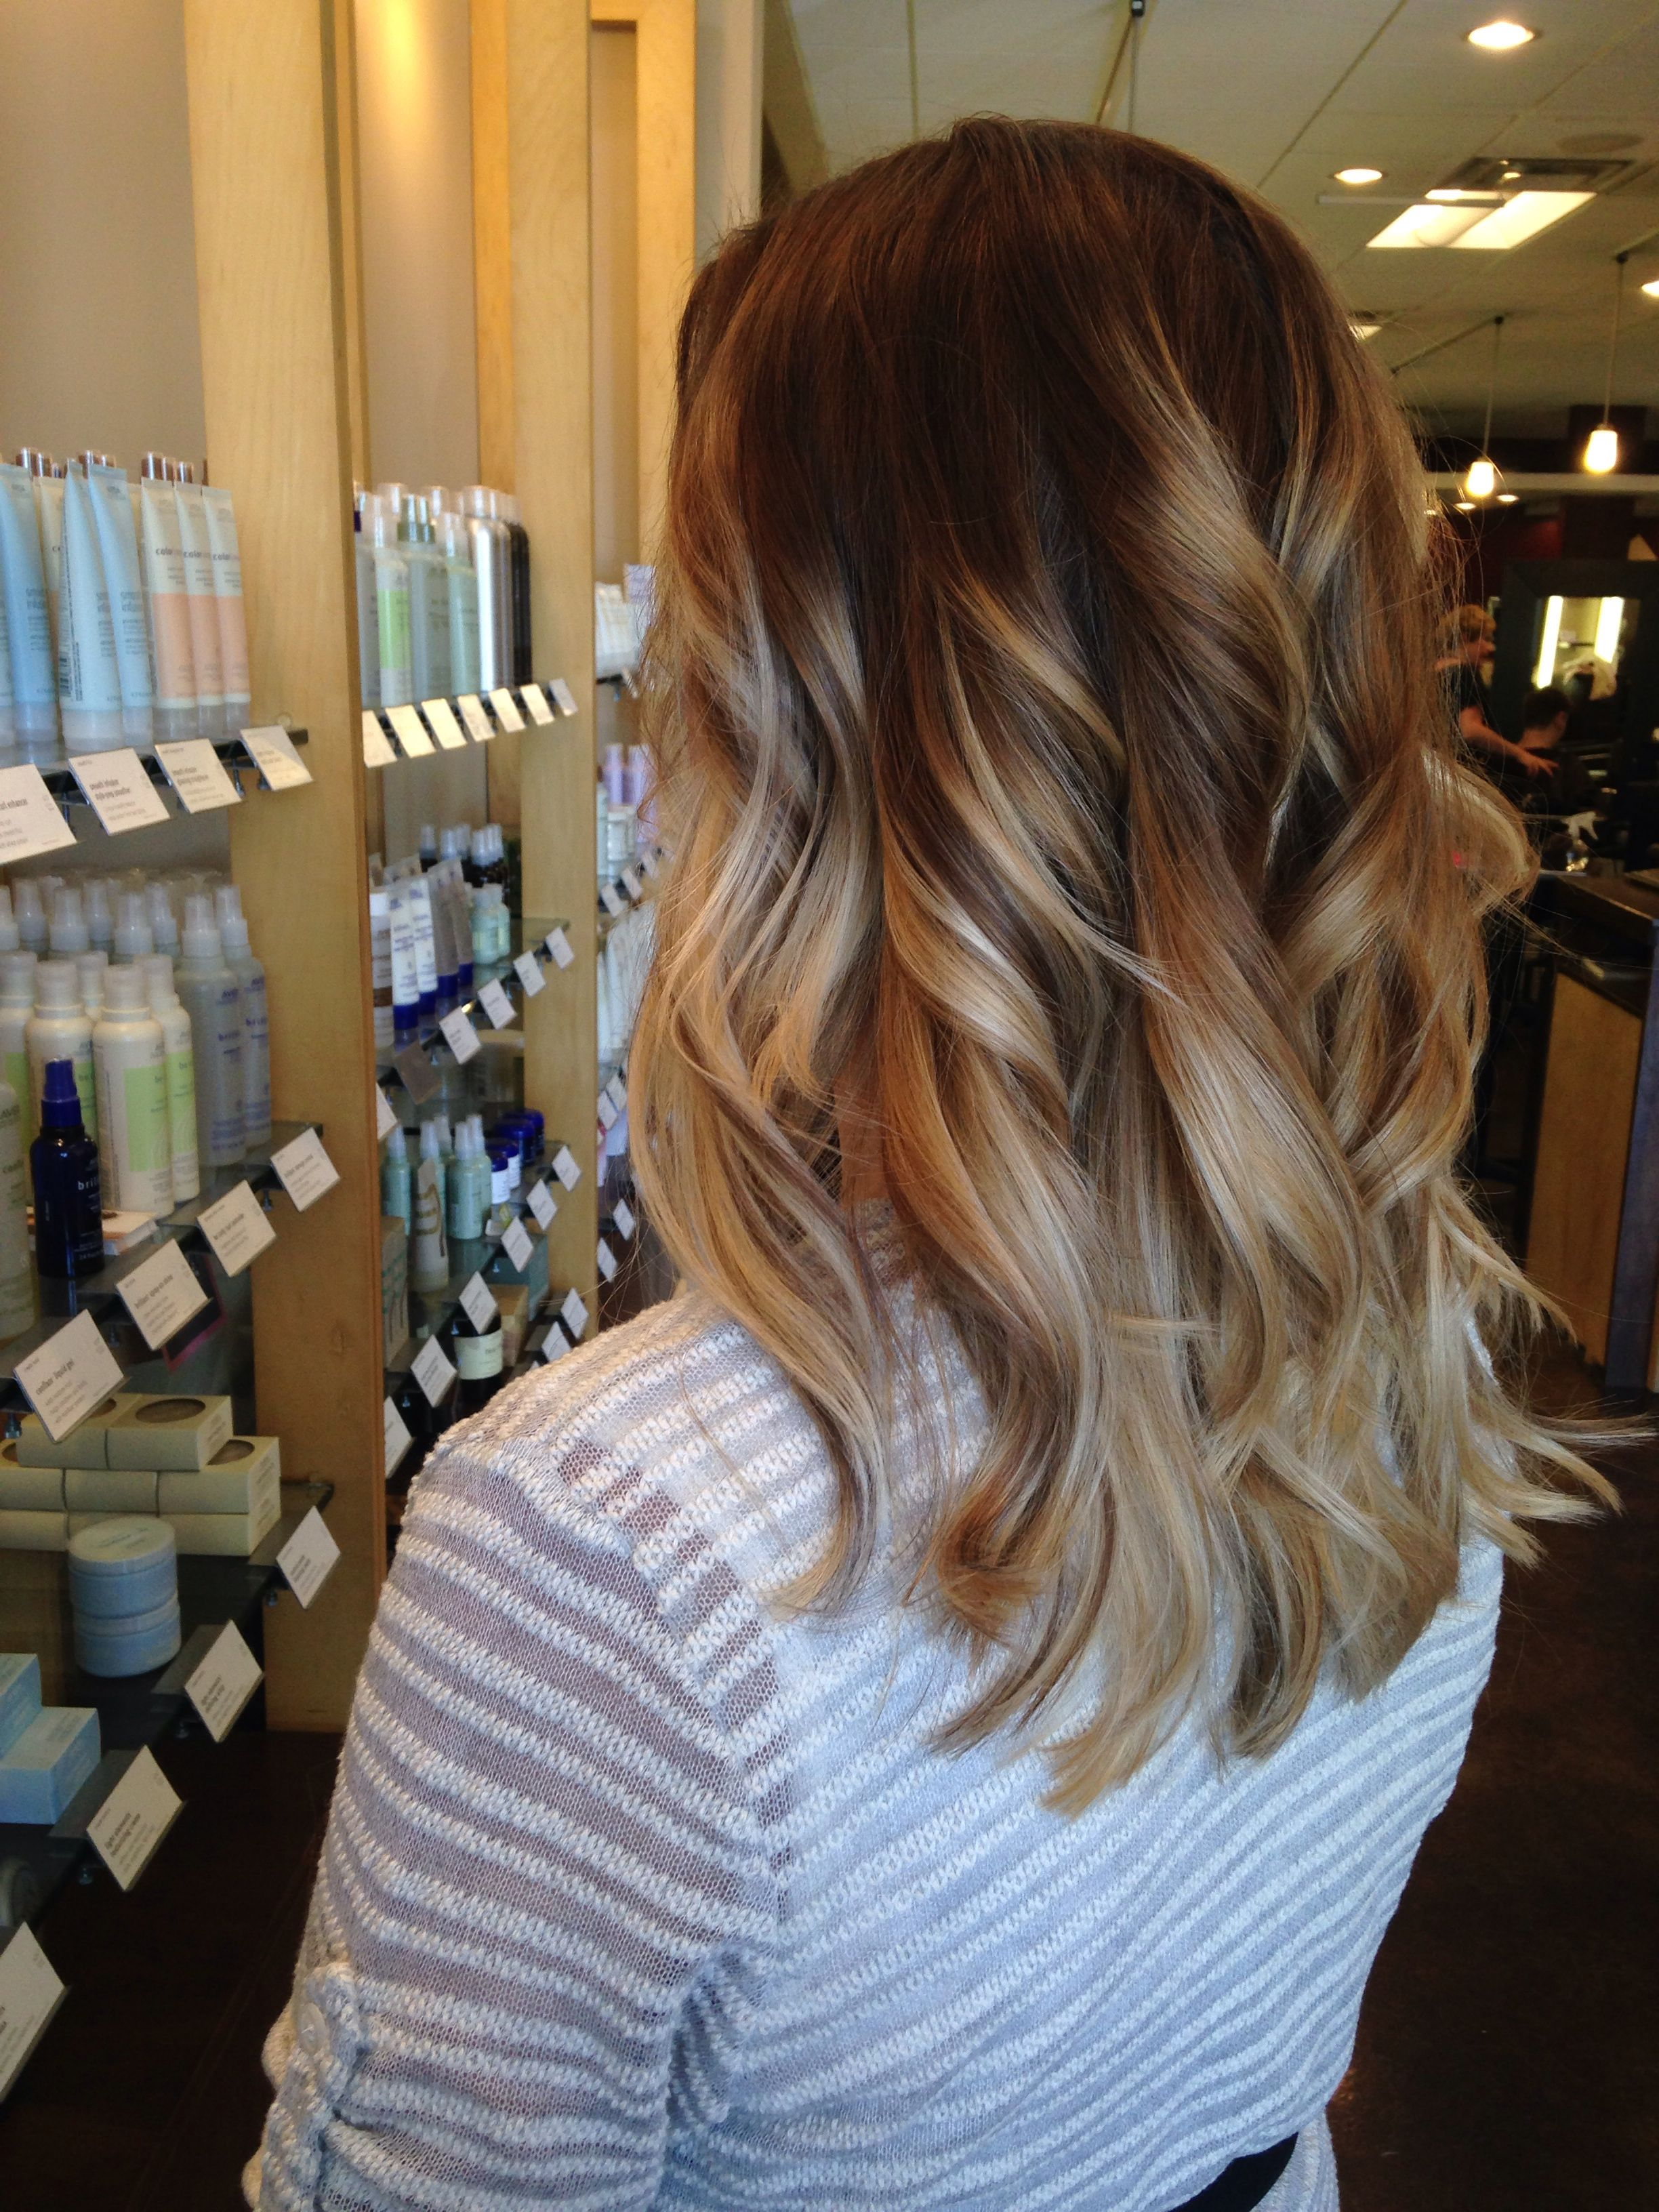 A Color Melted Bronde Ombr Using Aveda Full Spectrum Permanent